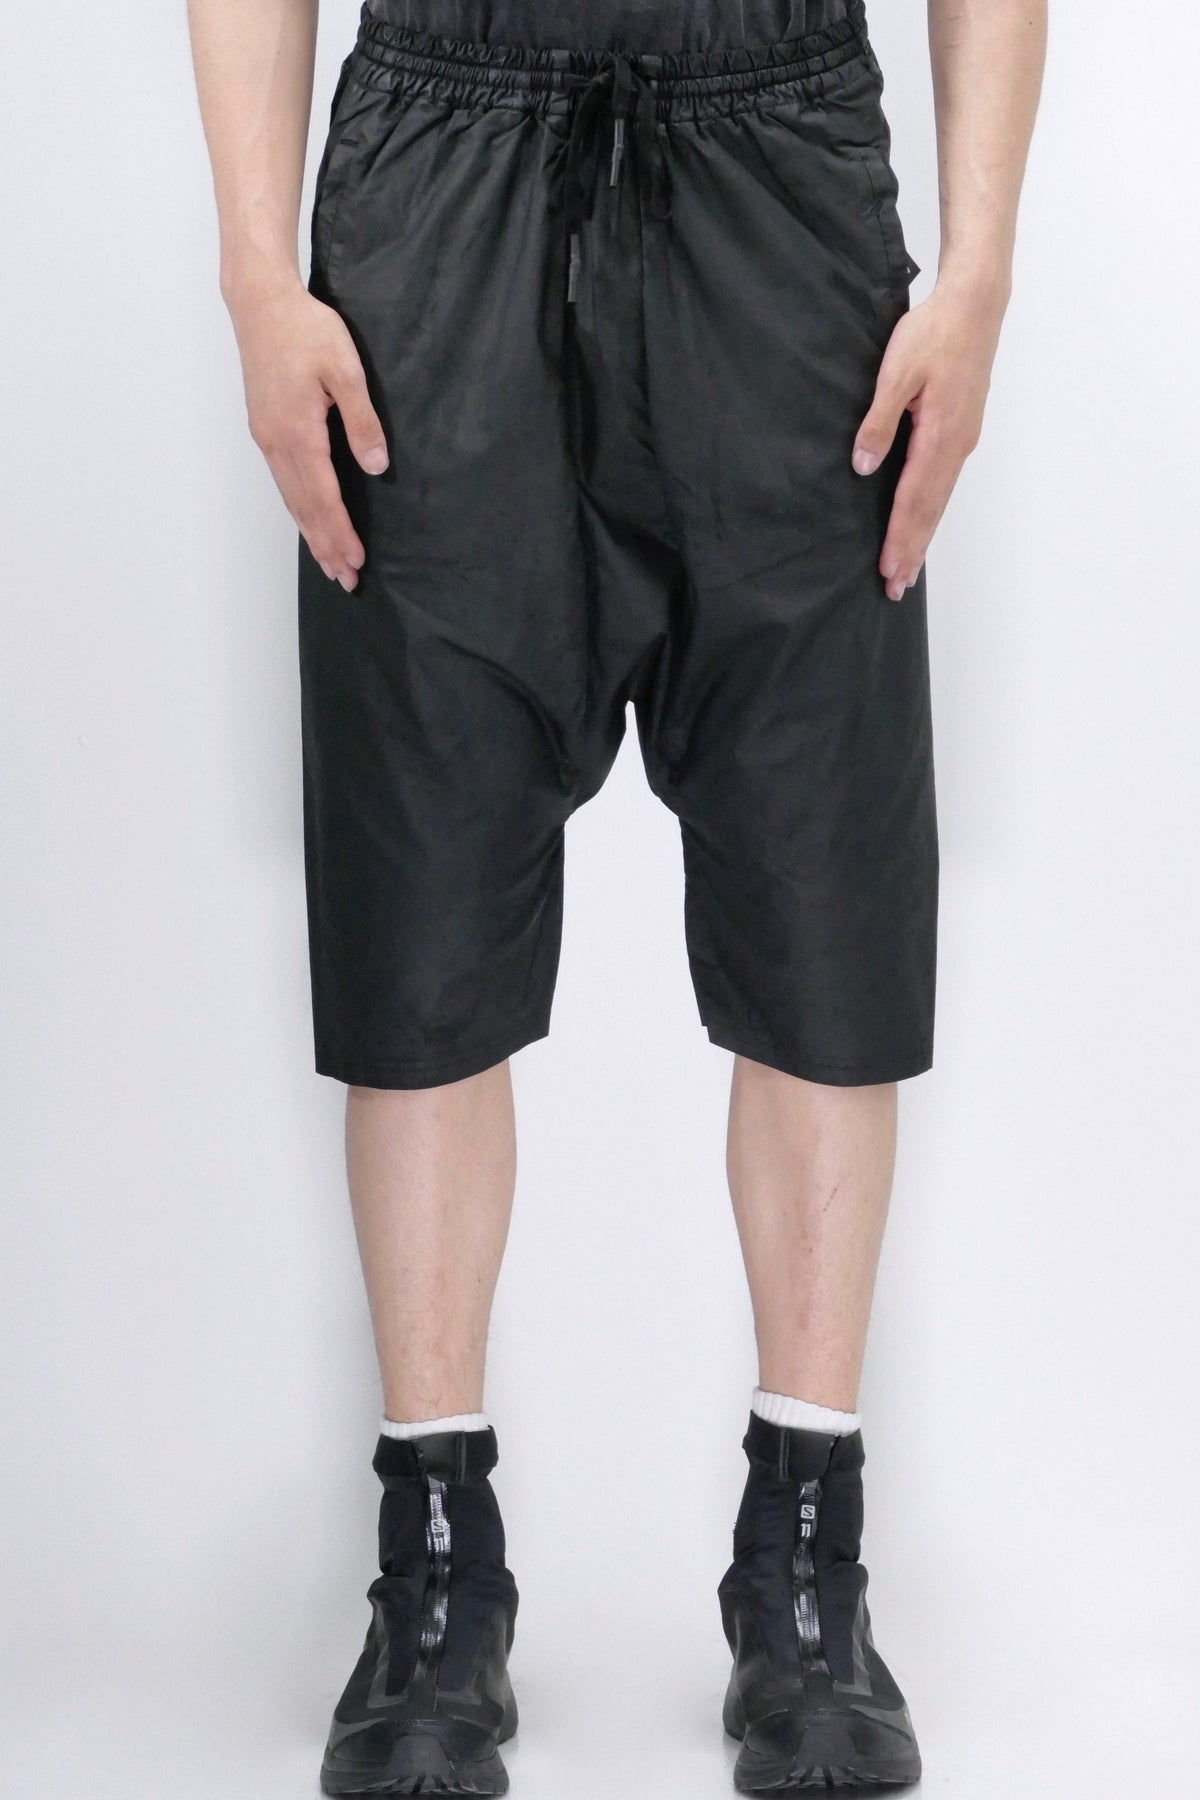 11 By Boris Bidjan Saberi P30 Coated Shorts Black